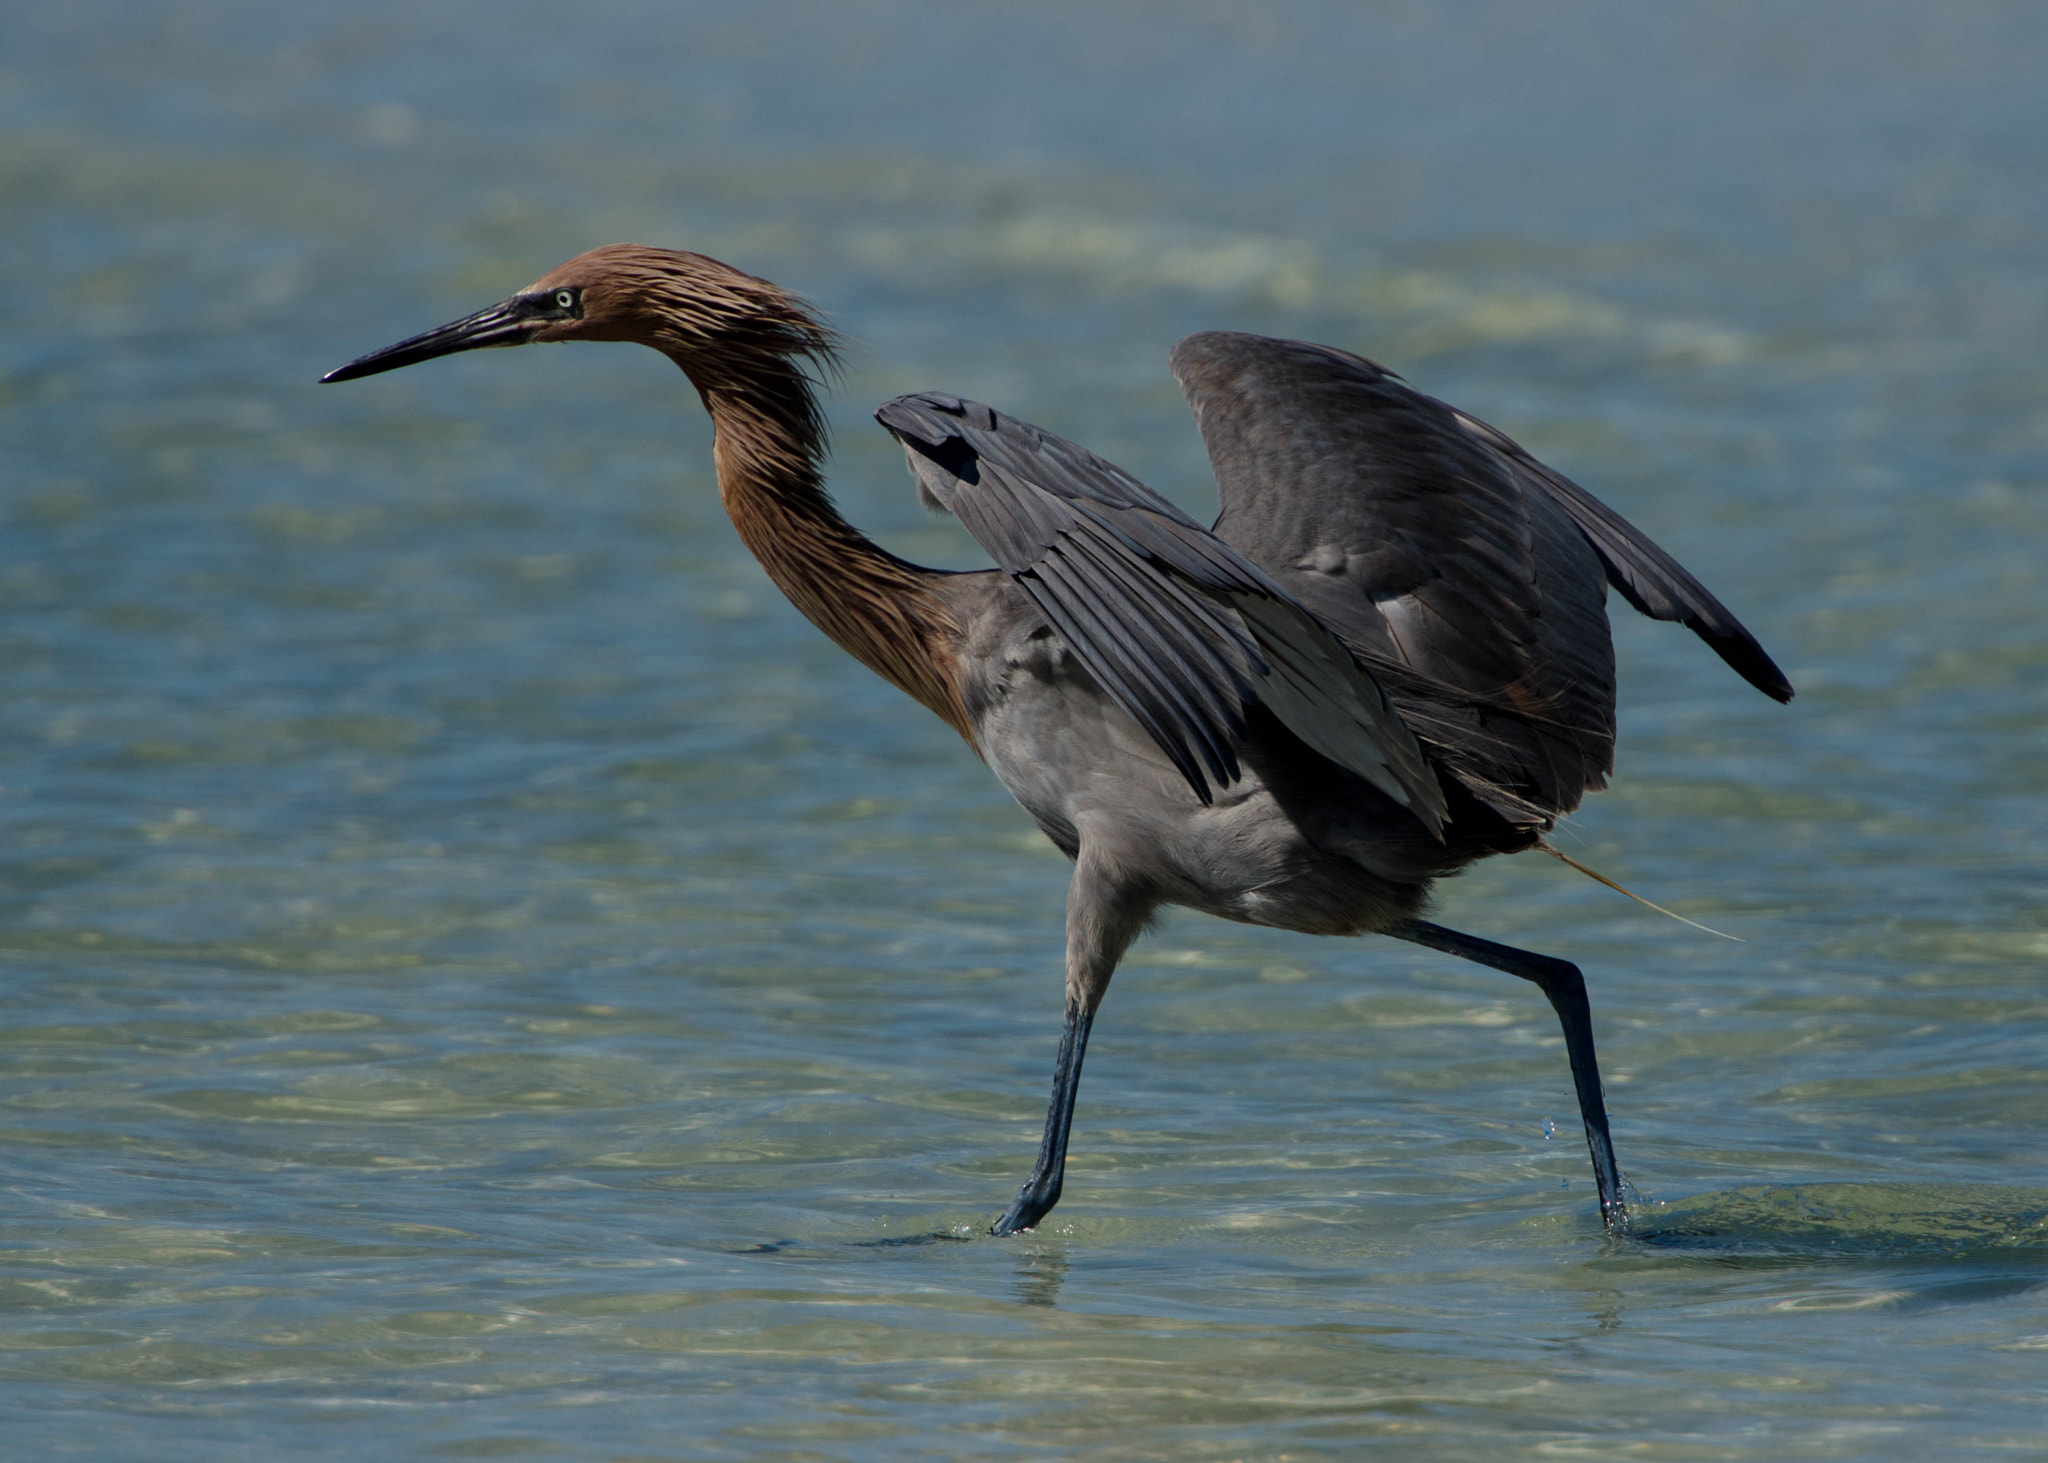 Photograph Reddish Egret Fishing by Ray Campbell on 500px